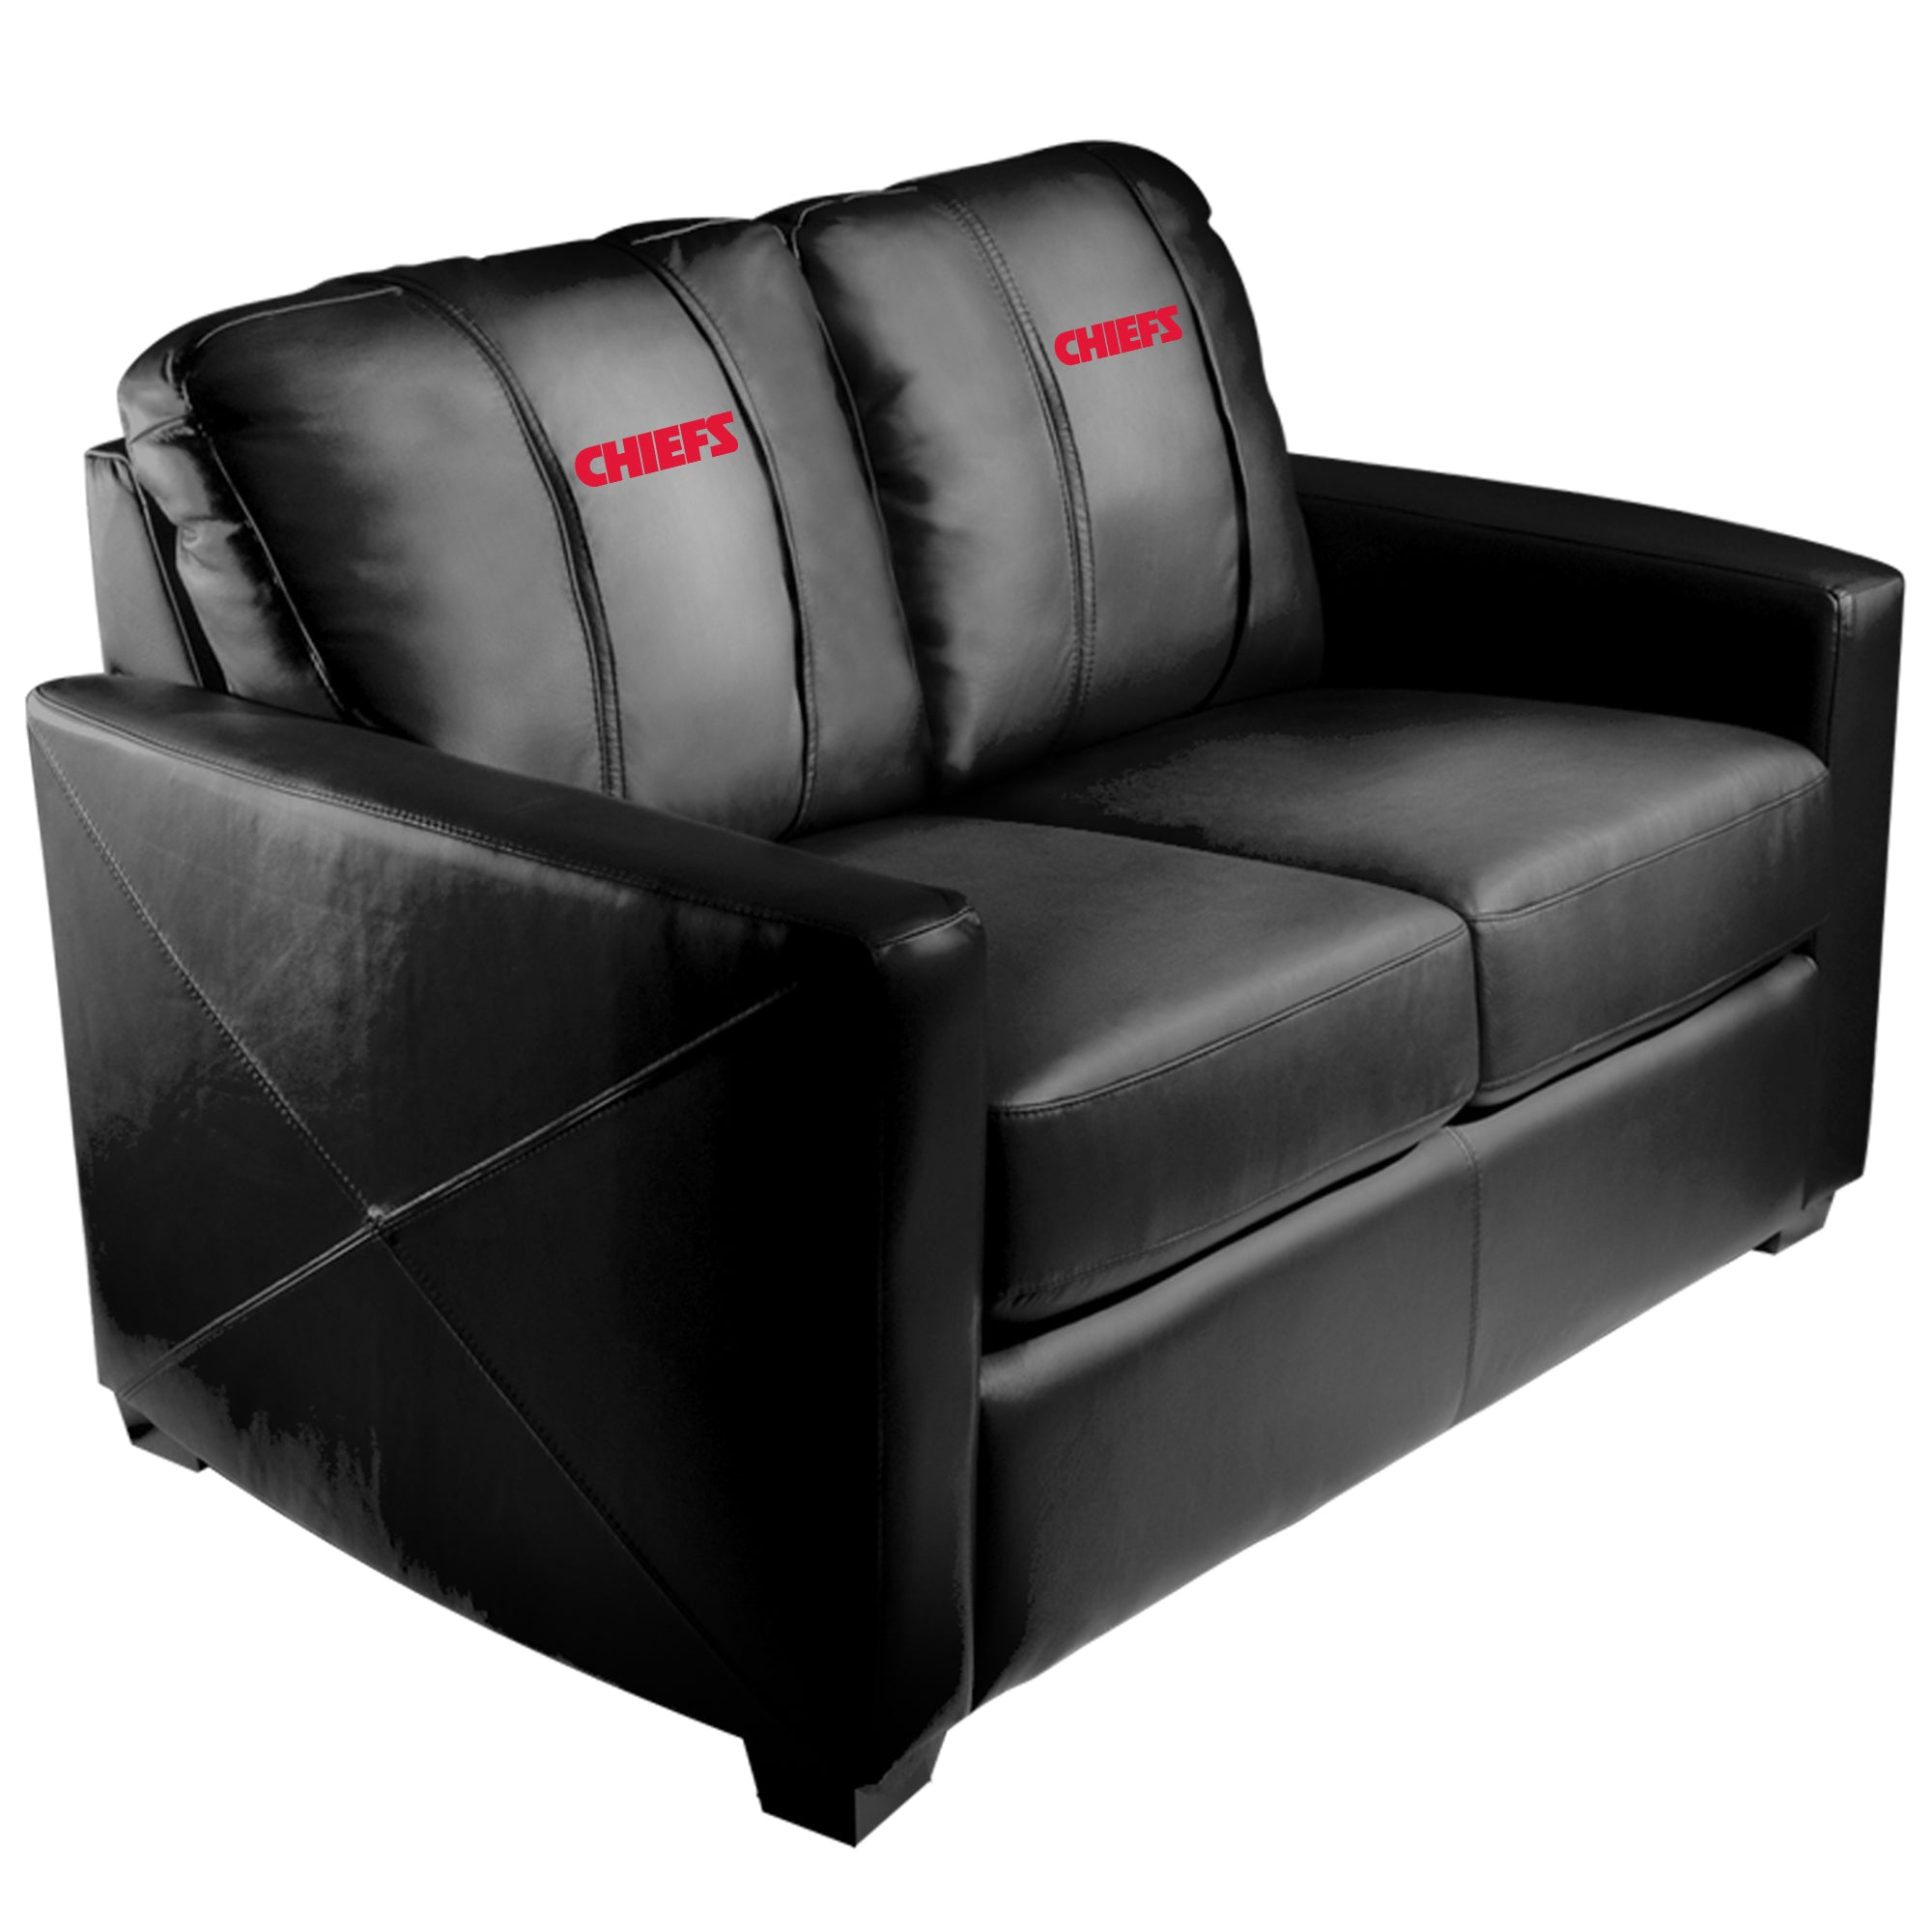 Silver Loveseat with  Kansas City Chiefs Secondary Logo